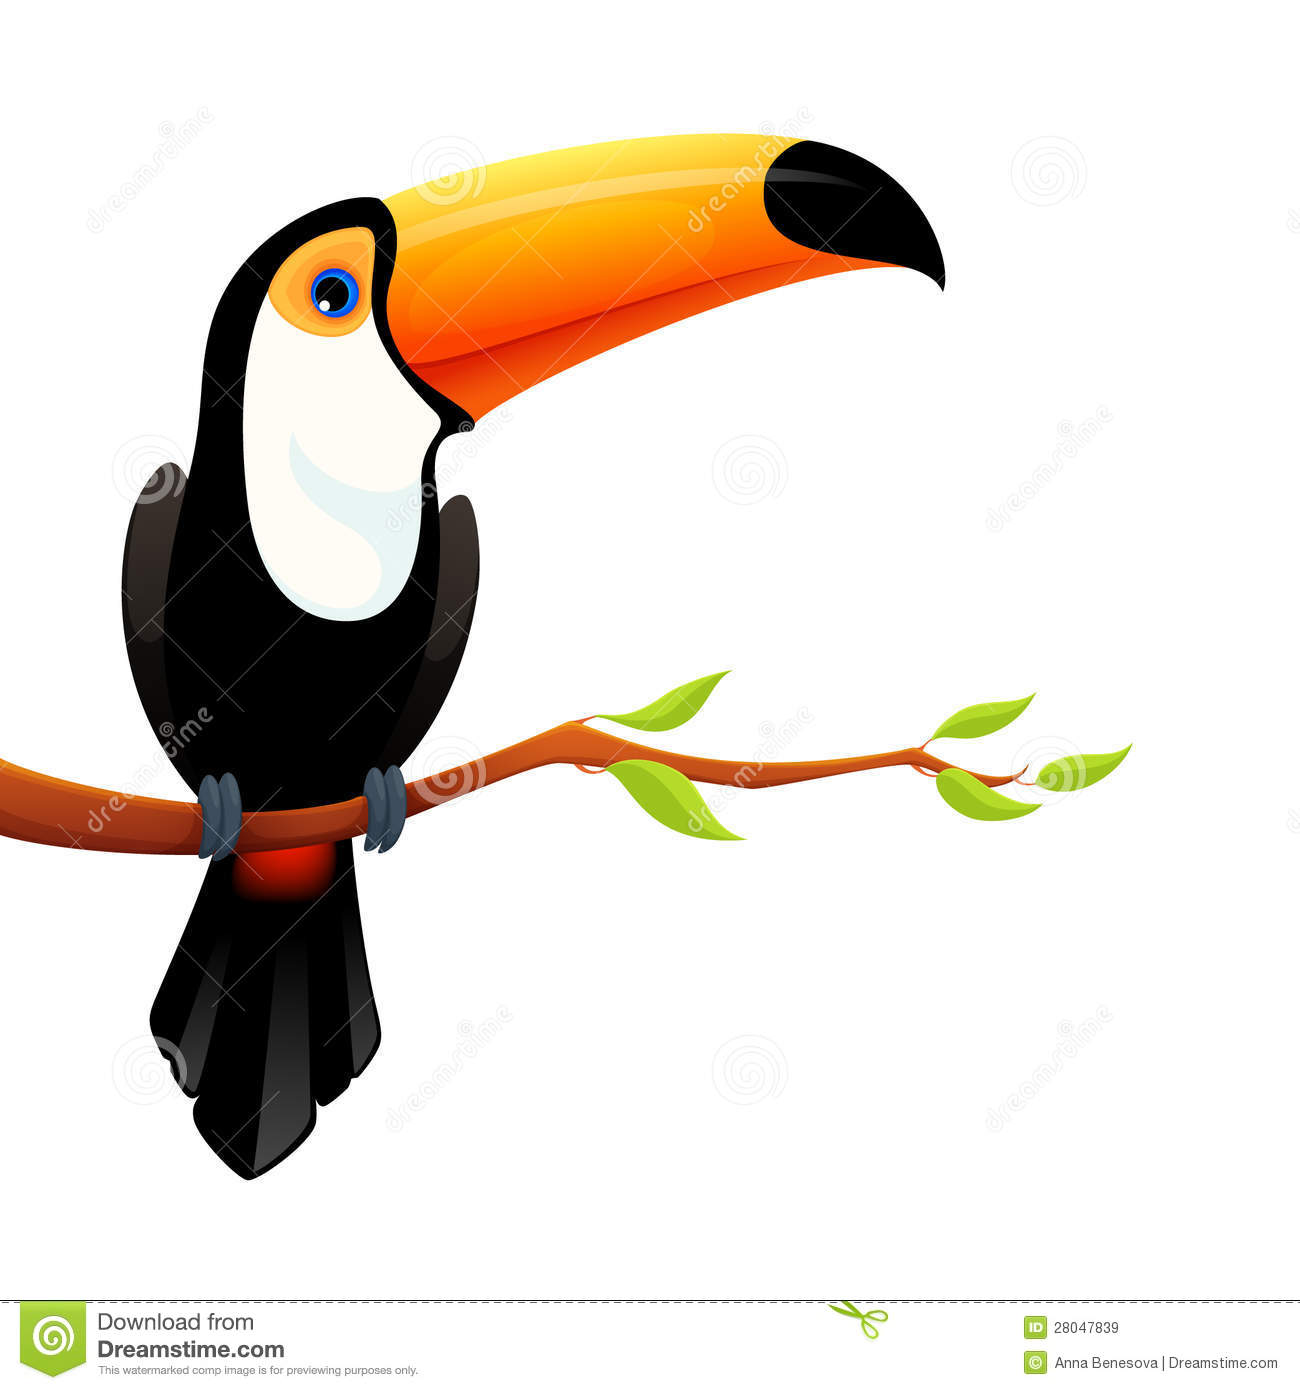 Colorful Illustration Of A Cute Toucan Royalty Free Stock Images